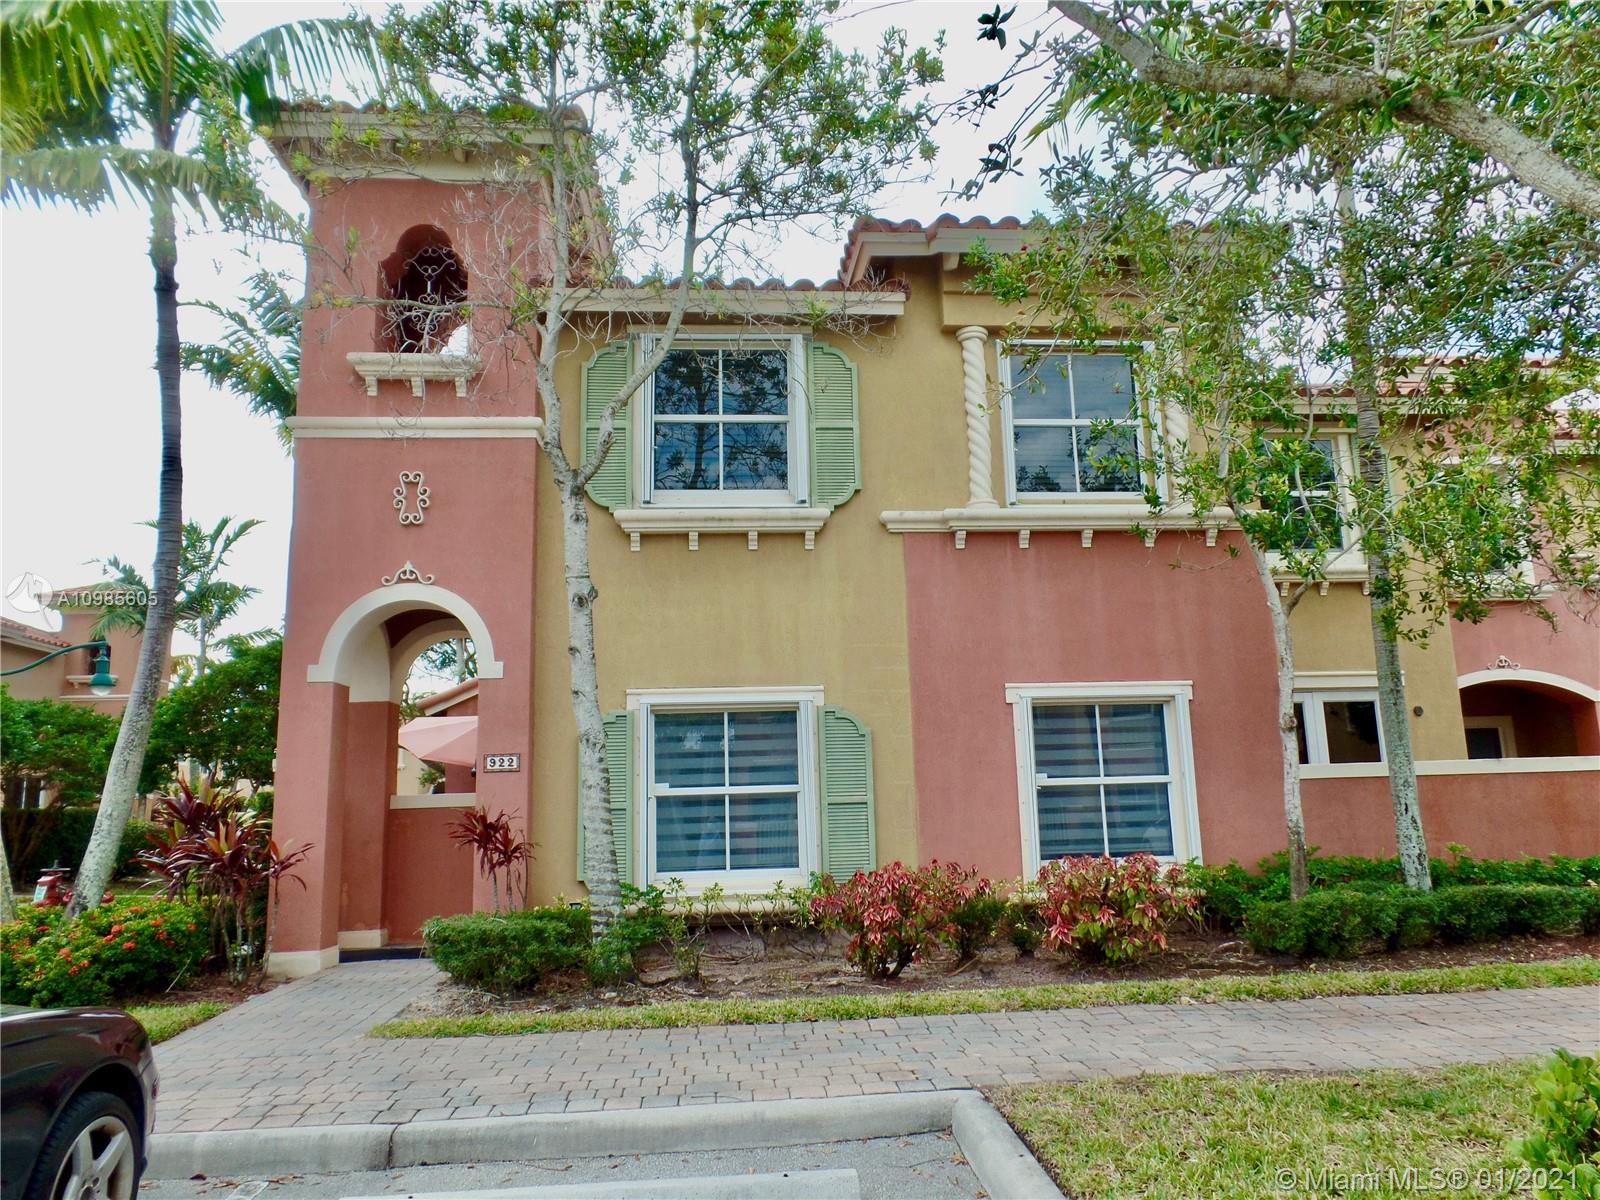 HIGHLY SOUGHT AFTER CORNER UNIT IN PEMBROKE CAY WITH OUTSIDE PATIO.  TOWNHOUSE HAS BRAND NEW ACCORDION SHUTTERS INSTALLED LATE 2020, NEW PORCELAIN MODERN TILE, NEW BASEBOARDS & PAINT DONE AUGUST 2019.  THREE BEDROOMS & 2.5 BATHROOM.  ENTER INTO THE A SPACIOUS GREAT ROOM WHICH CAN BE LARGE LIVING ROOM OR USED AS LIVING AND DINING ROOM, SEPARATE FAMILY ROOM OR SEPARATE DINING ROOM OPTION ACROSS THE KITCHEN.  KITCHEN HAS GRANITE COUNTERTOPS AND STAINLESS STEEL APPLIANCES.  NEW ZEBRA STYLE BLINDS DOWNSTAIRS AND ALL OTHER BLINDS STAYING WITH THE HOUSE.  PEMBROKE CAY IS ONE OF THE AREA'S PREMIERE COMMUNITIES BECAUSE OF IT'S LOCATION, WALKING DISTANCE FROM PREMIUM OUTDOOR MALL - PEMBROKE GARDENS - WITH PLENTY OF DINING AND SHOPPING. GATED COMMUNITY, ASSOC. PAYMENT INCLUDES DIRECTV WITH INTERNET.